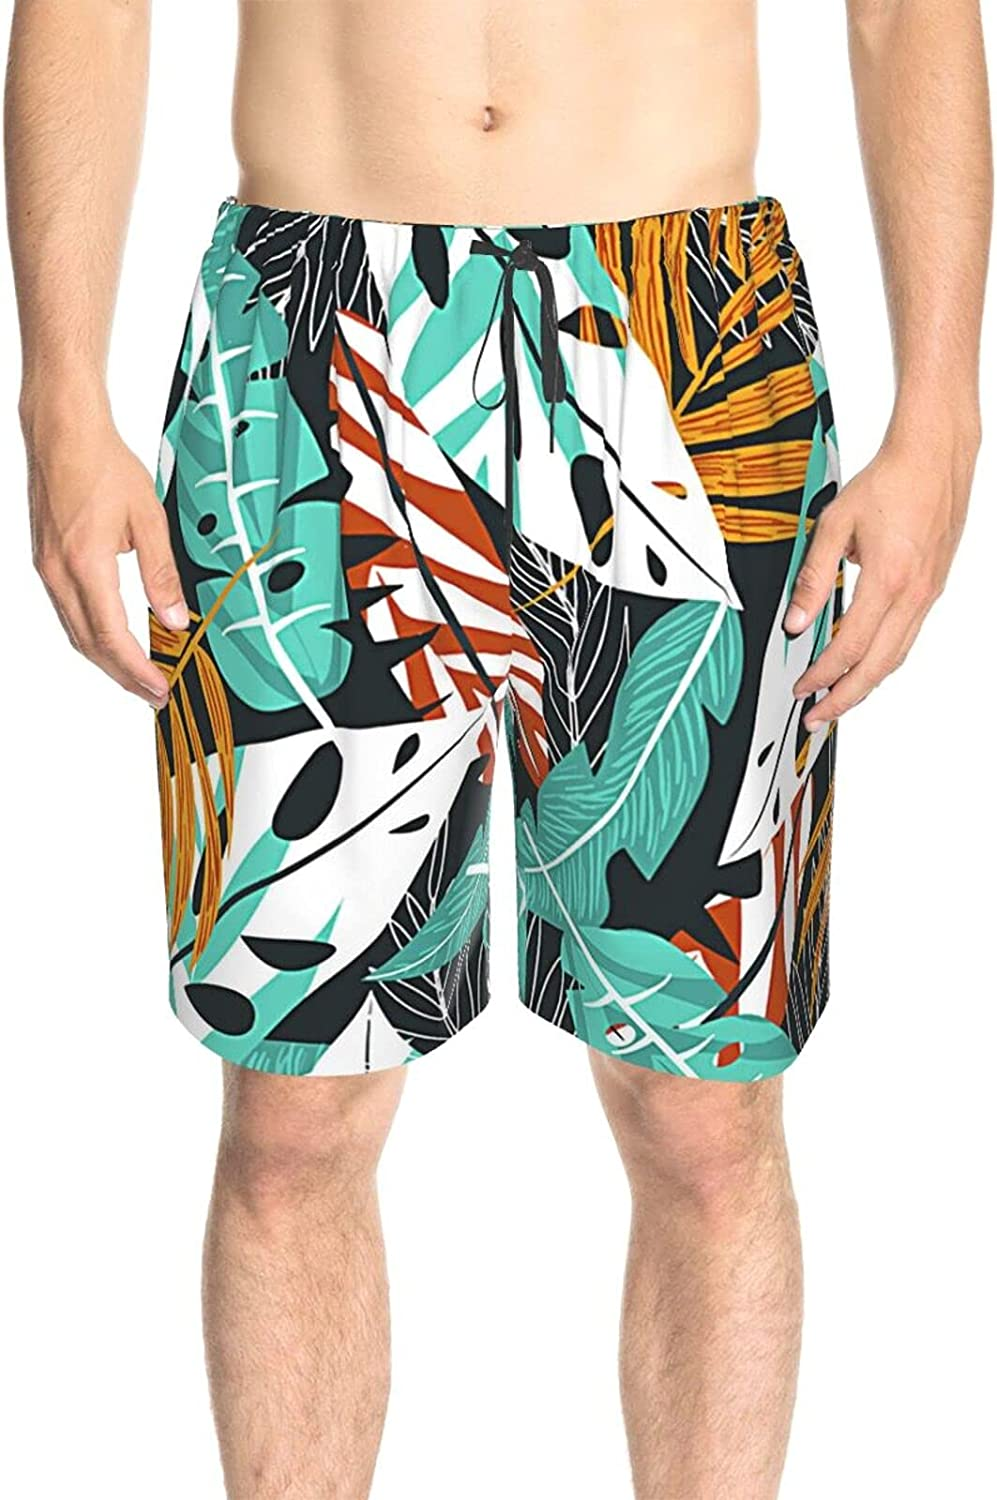 JINJUELS Mens Bathing Suits Summer Leaves Bathing Suit Boardshorts Fast Dry Fashion Surf Beach Shorts with Lining